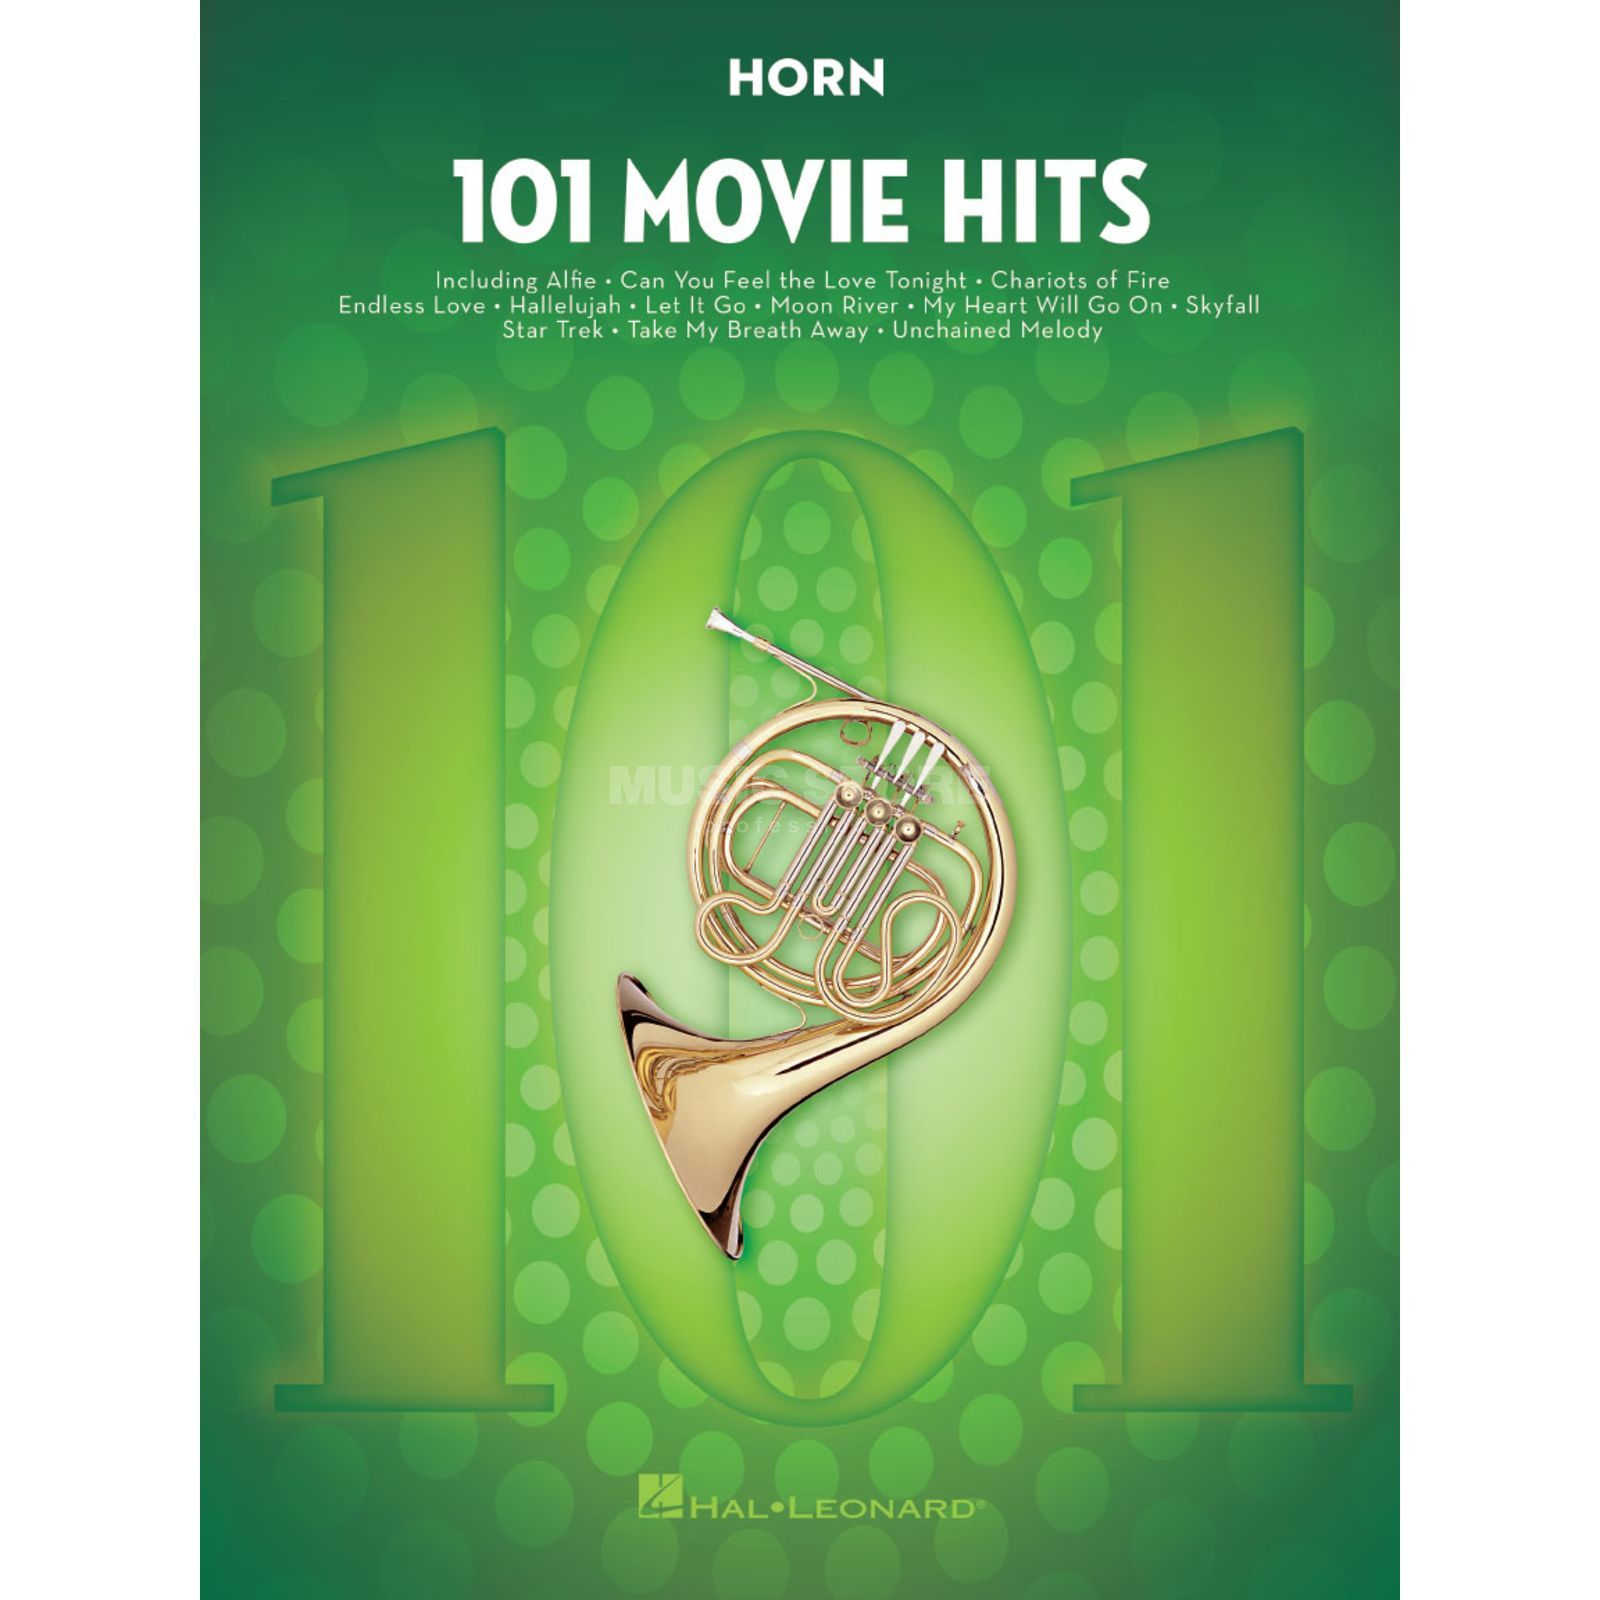 Hal Leonard 101 Movie Hits For Horn Produktbild